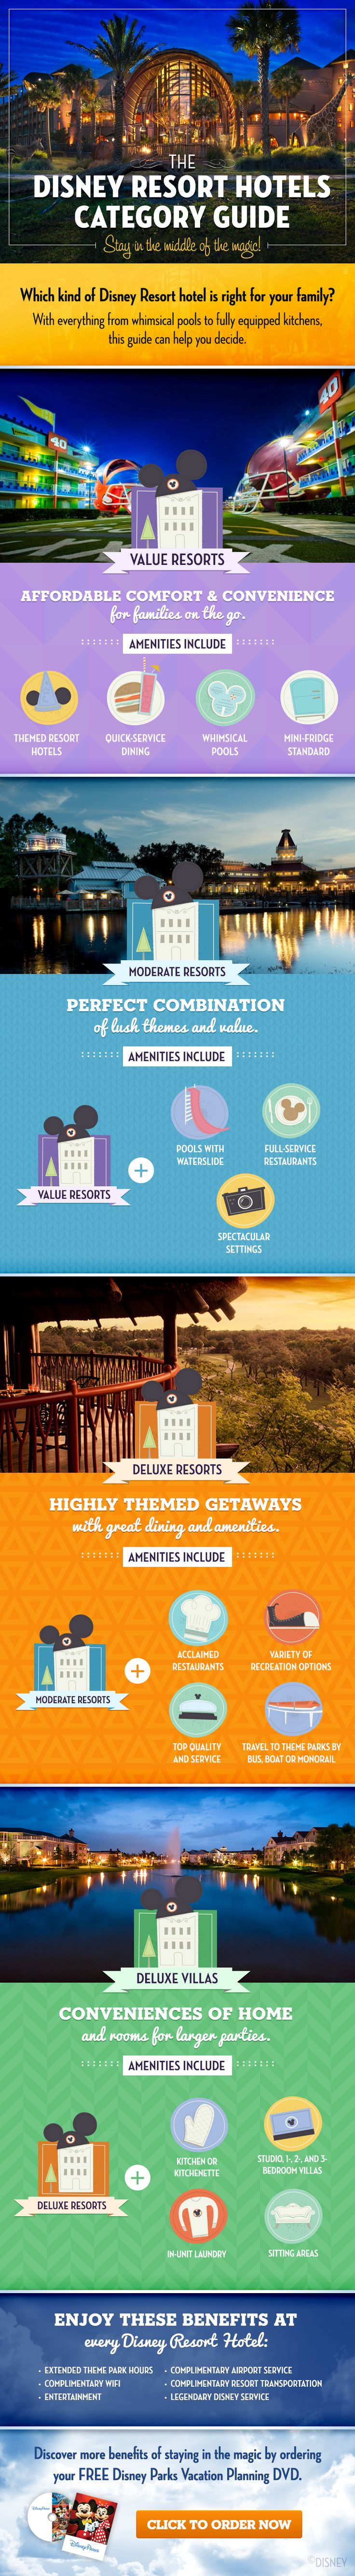 Learn which kind of Disney Resort hotel is right for your family at Walt Disney World!